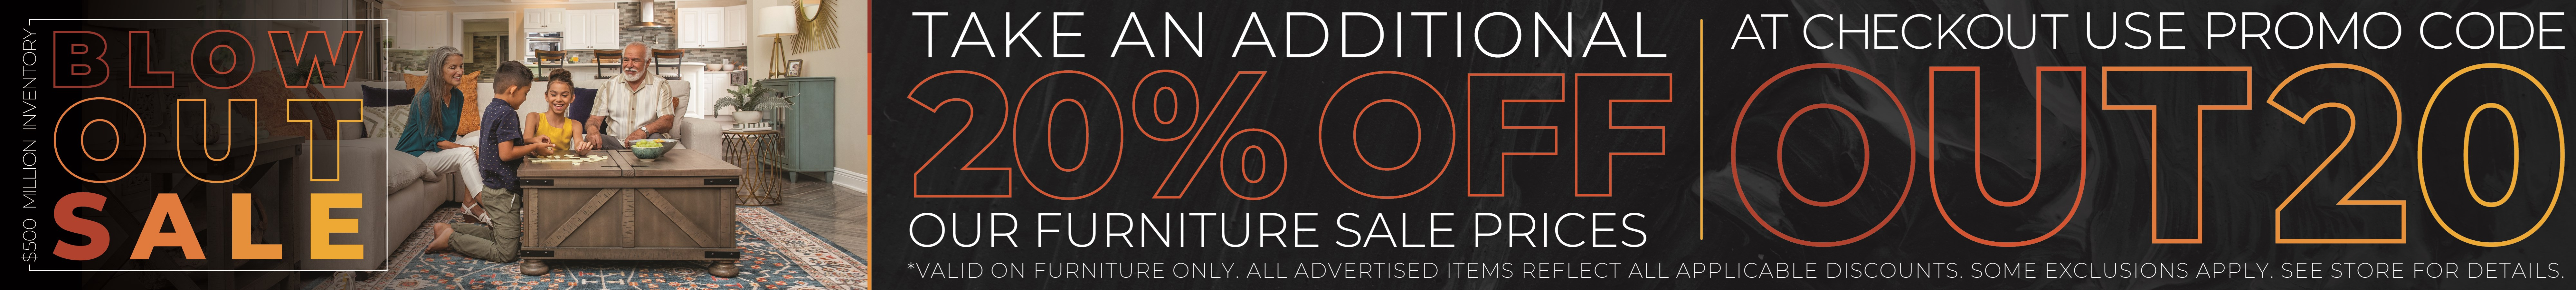 Furniture & ApplianceMart $500M Blowout Sale